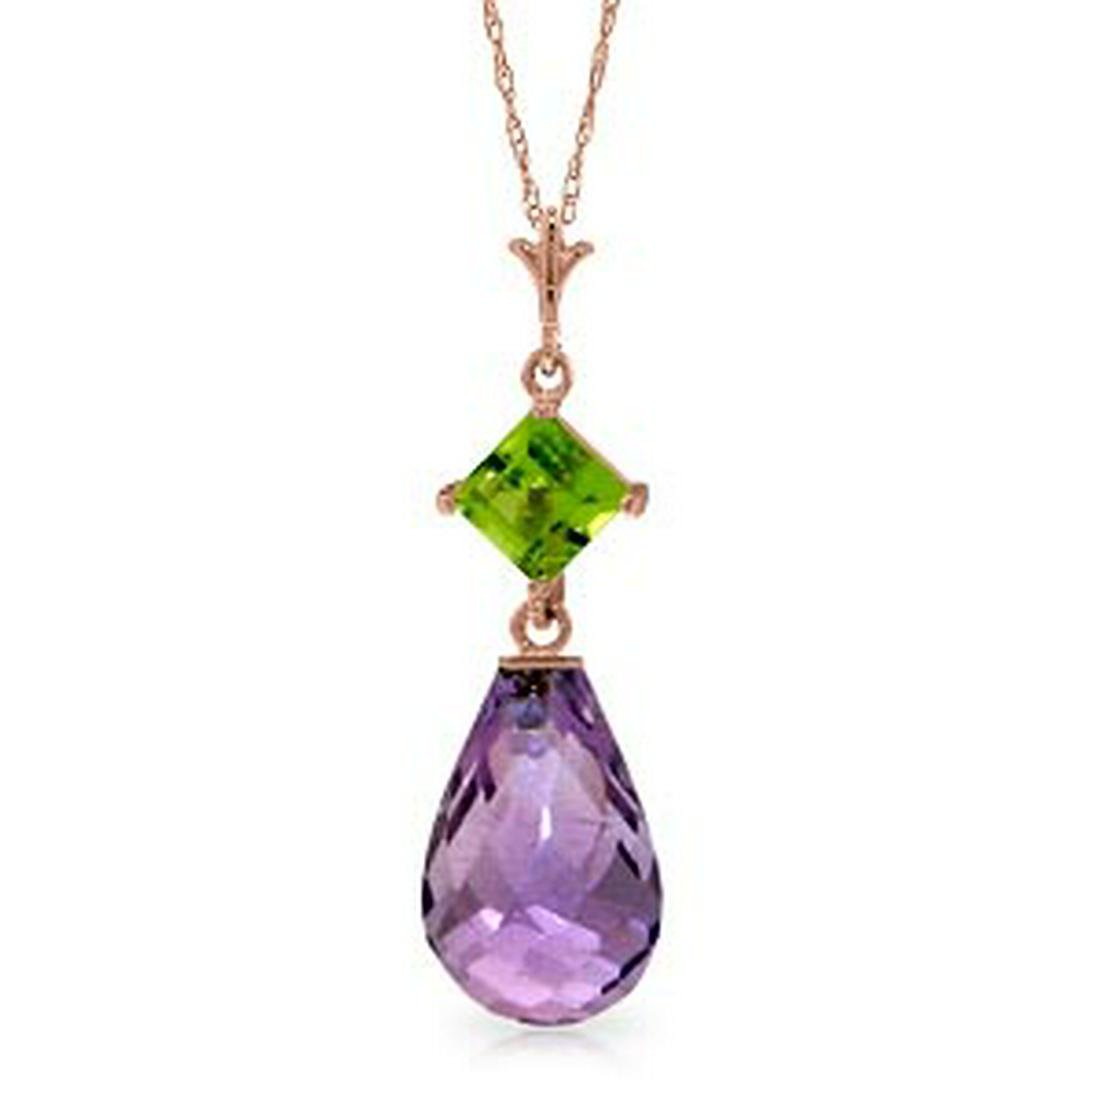 14K Solid Rose Gold Necklace with Peridot & Purple Amet